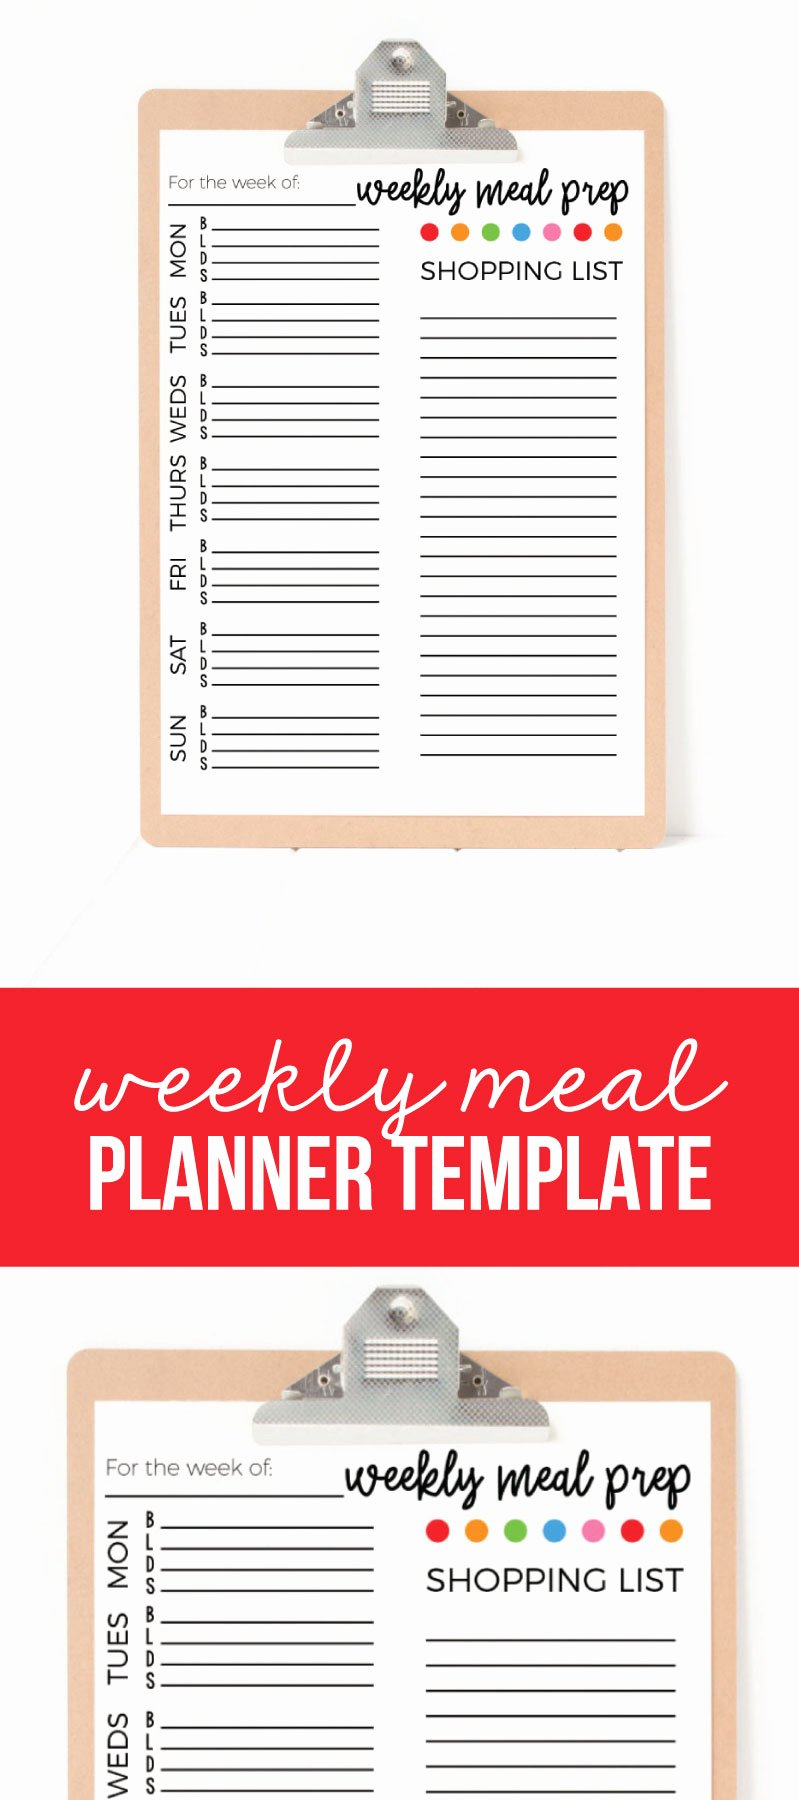 Free Meal Planner Template Download Awesome Weekly Meal Planner Template